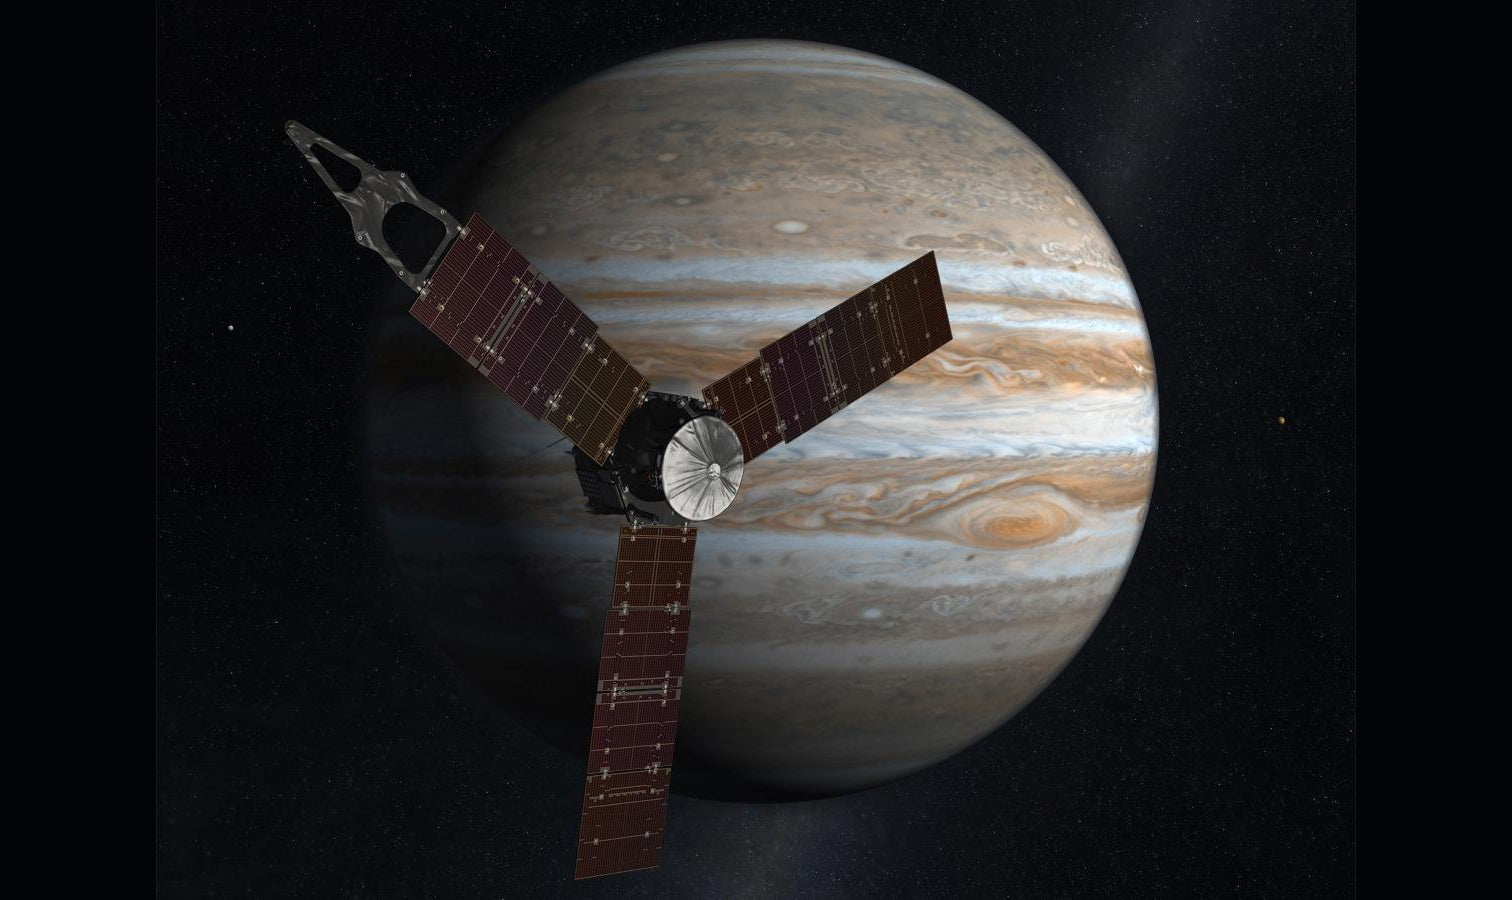 NASA's Mission To Jupiter Will Tell Us Earth's Origin Story